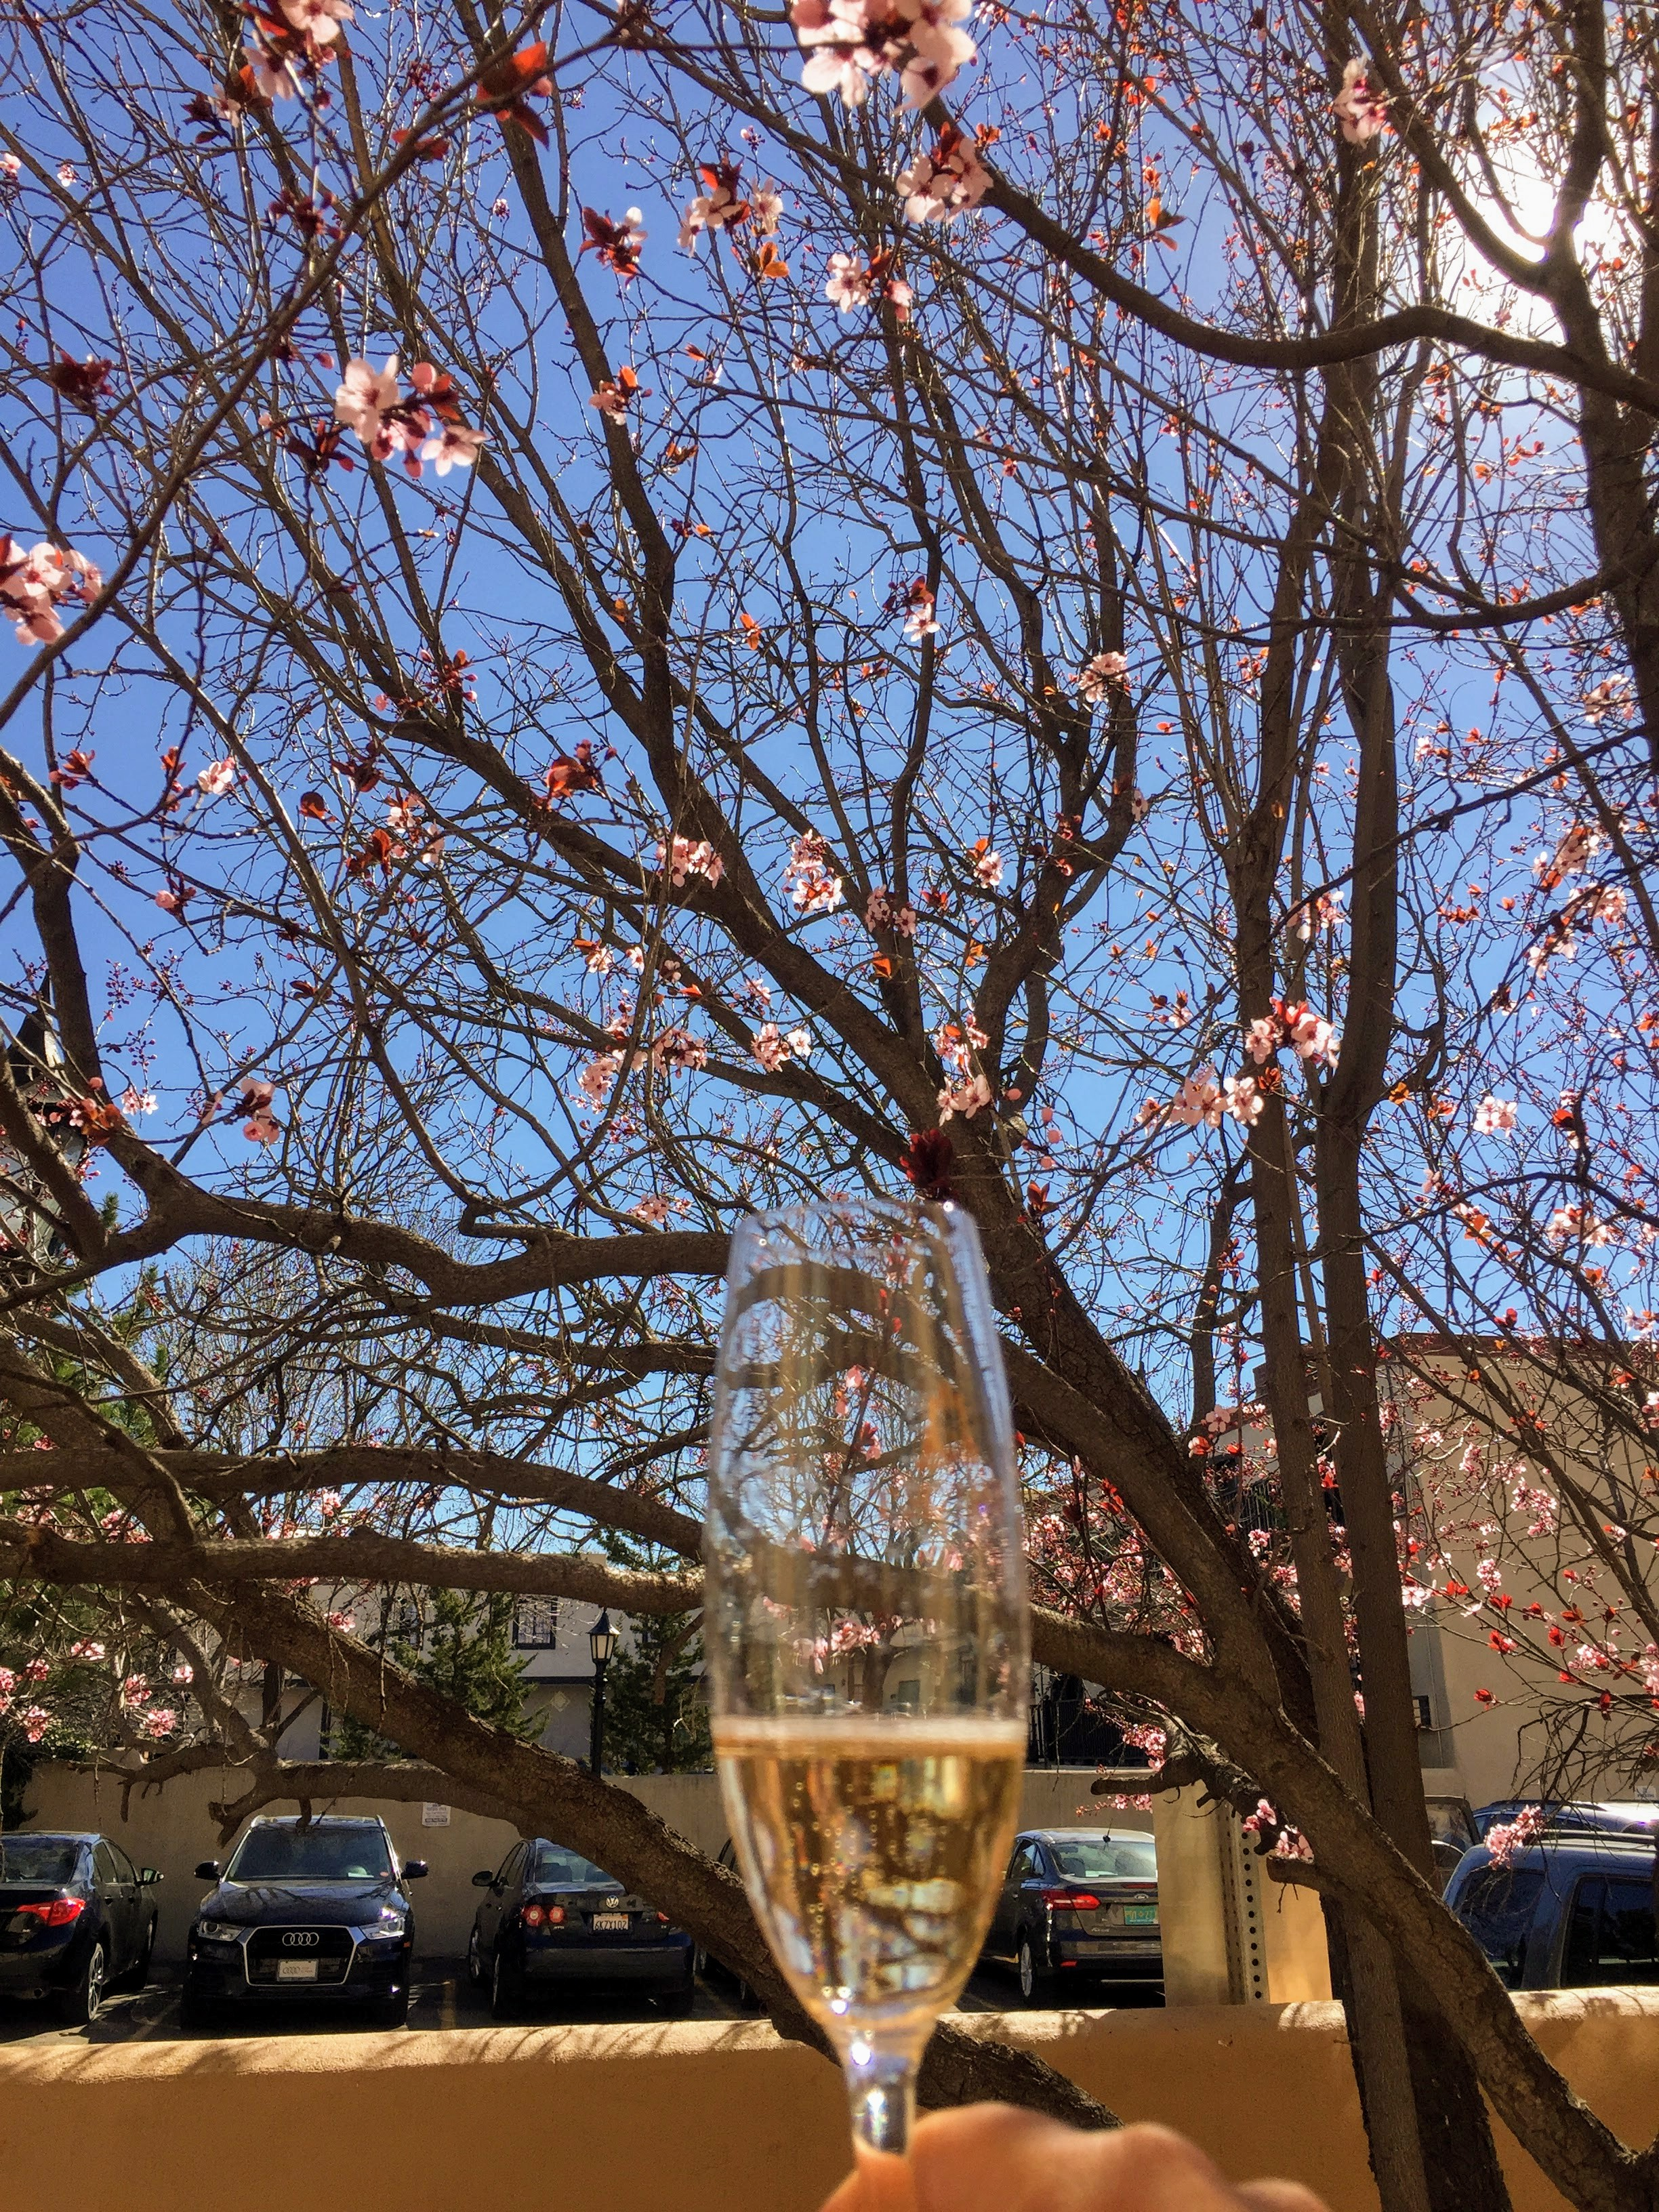 Spring is the perfect time to enjoy a sunny afternoon at  Gruet Santa Fe . Enjoy lounging on the patio underneath the cherry blossoms